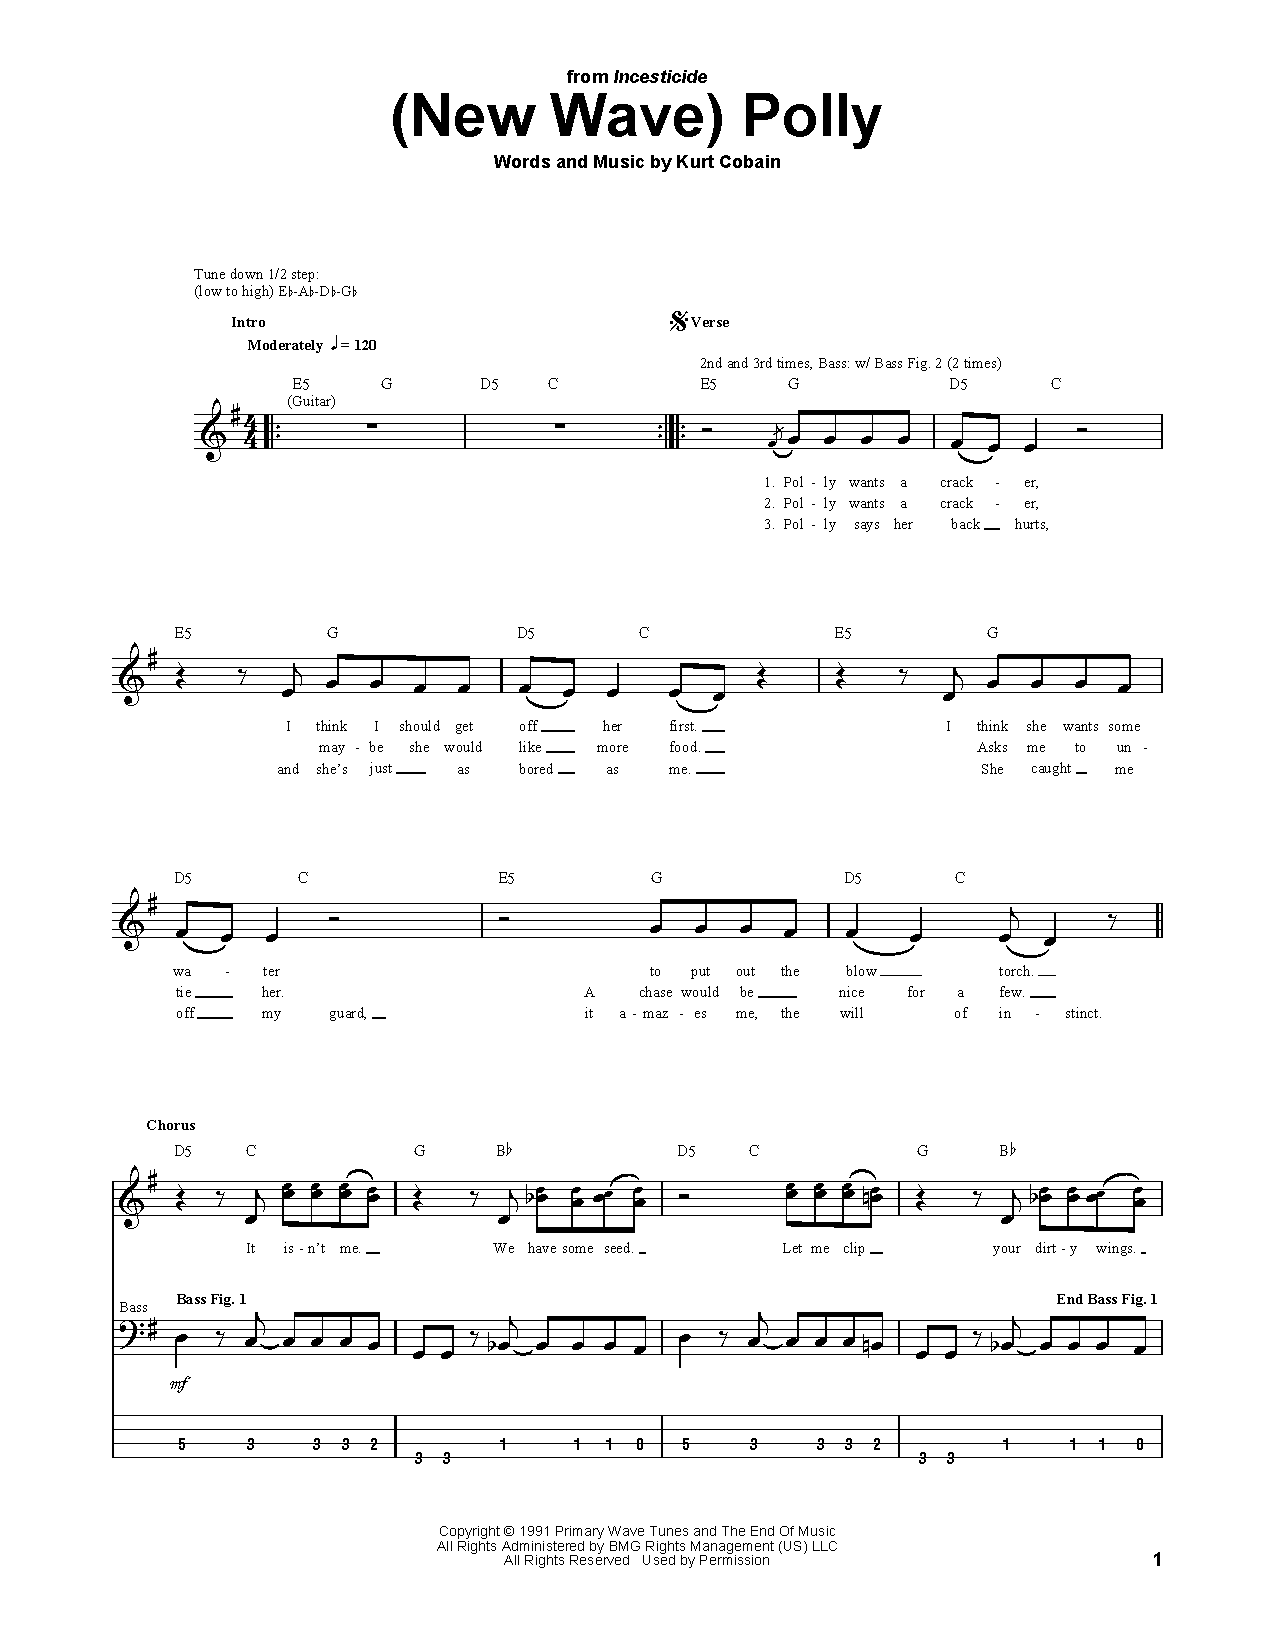 (New Wave) Polly Sheet Music